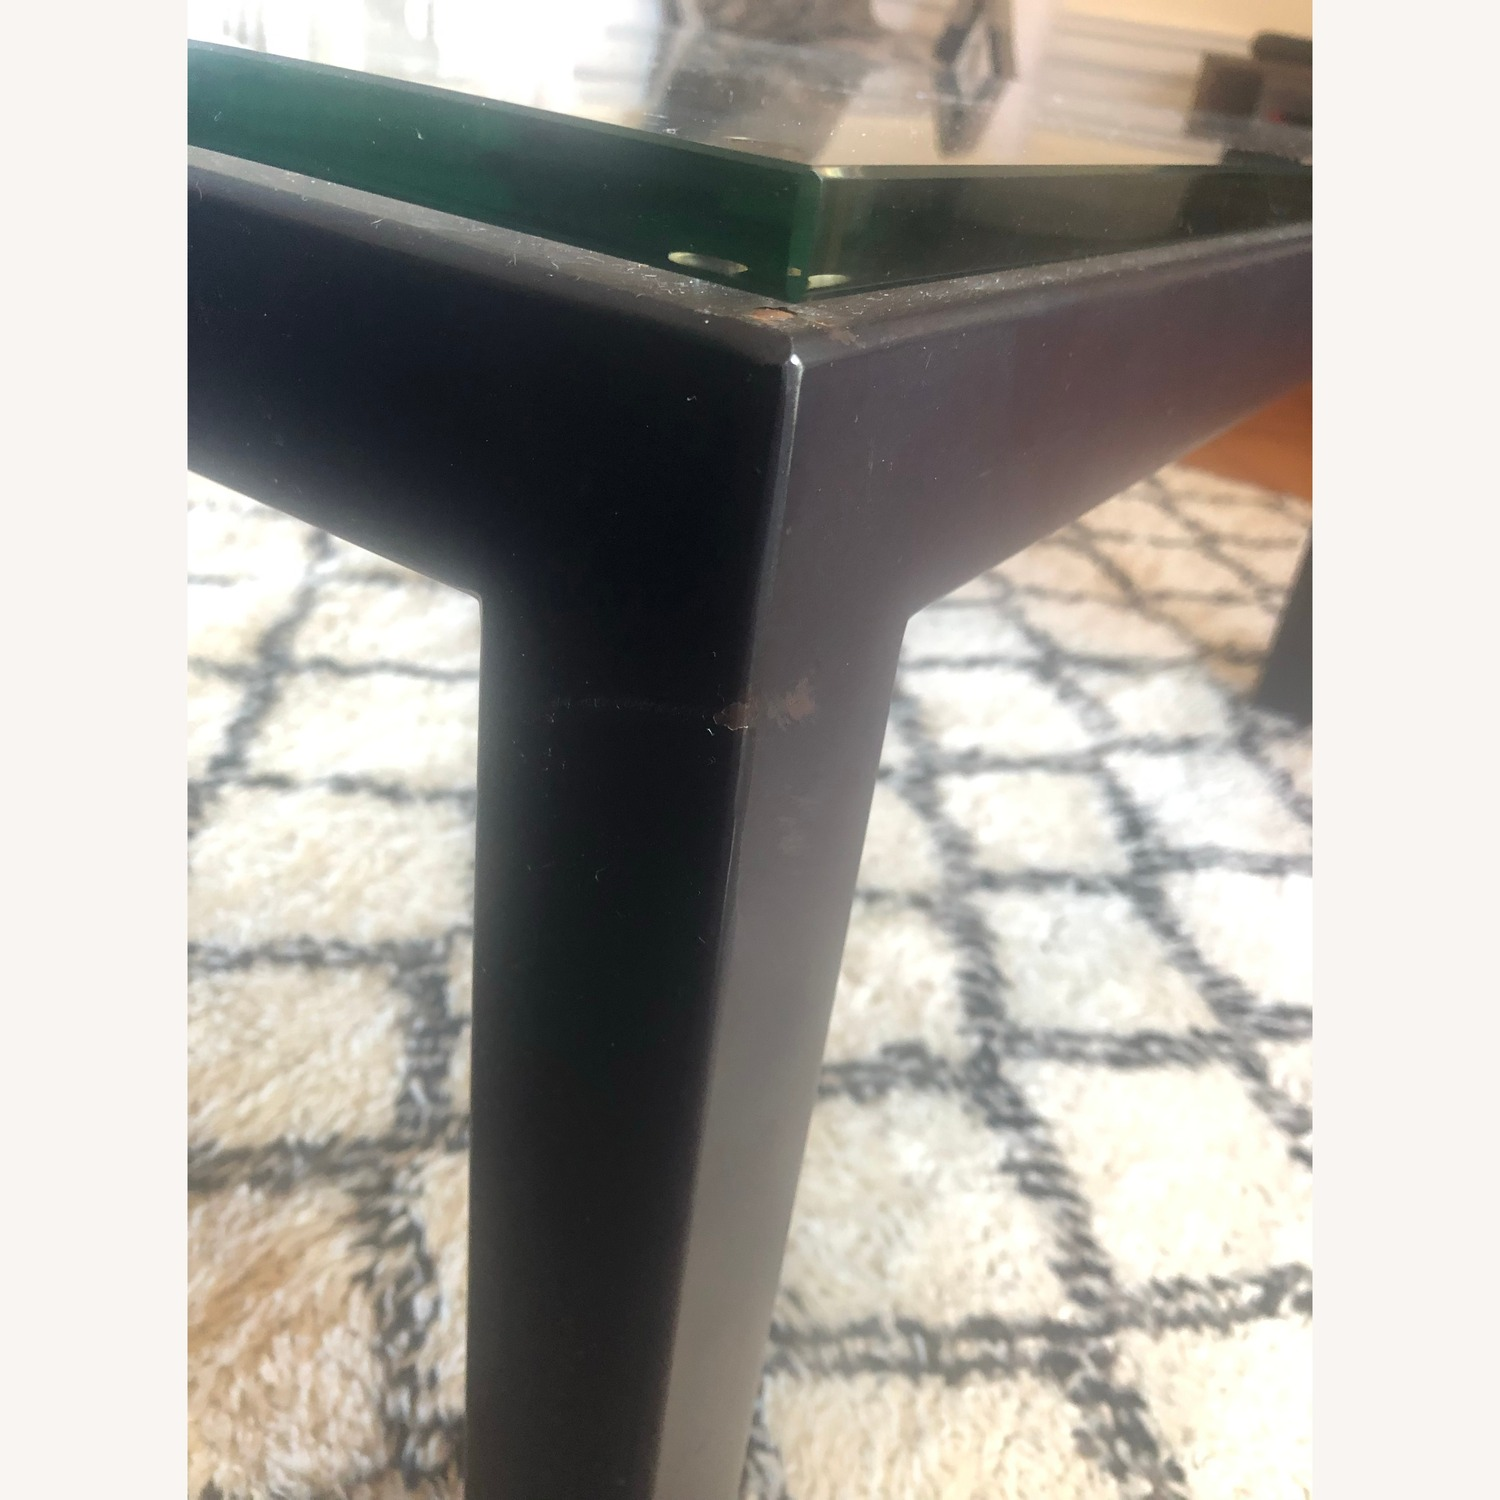 Crate & Barrel Sturdy & Elegant Glass Coffee Table - image-4